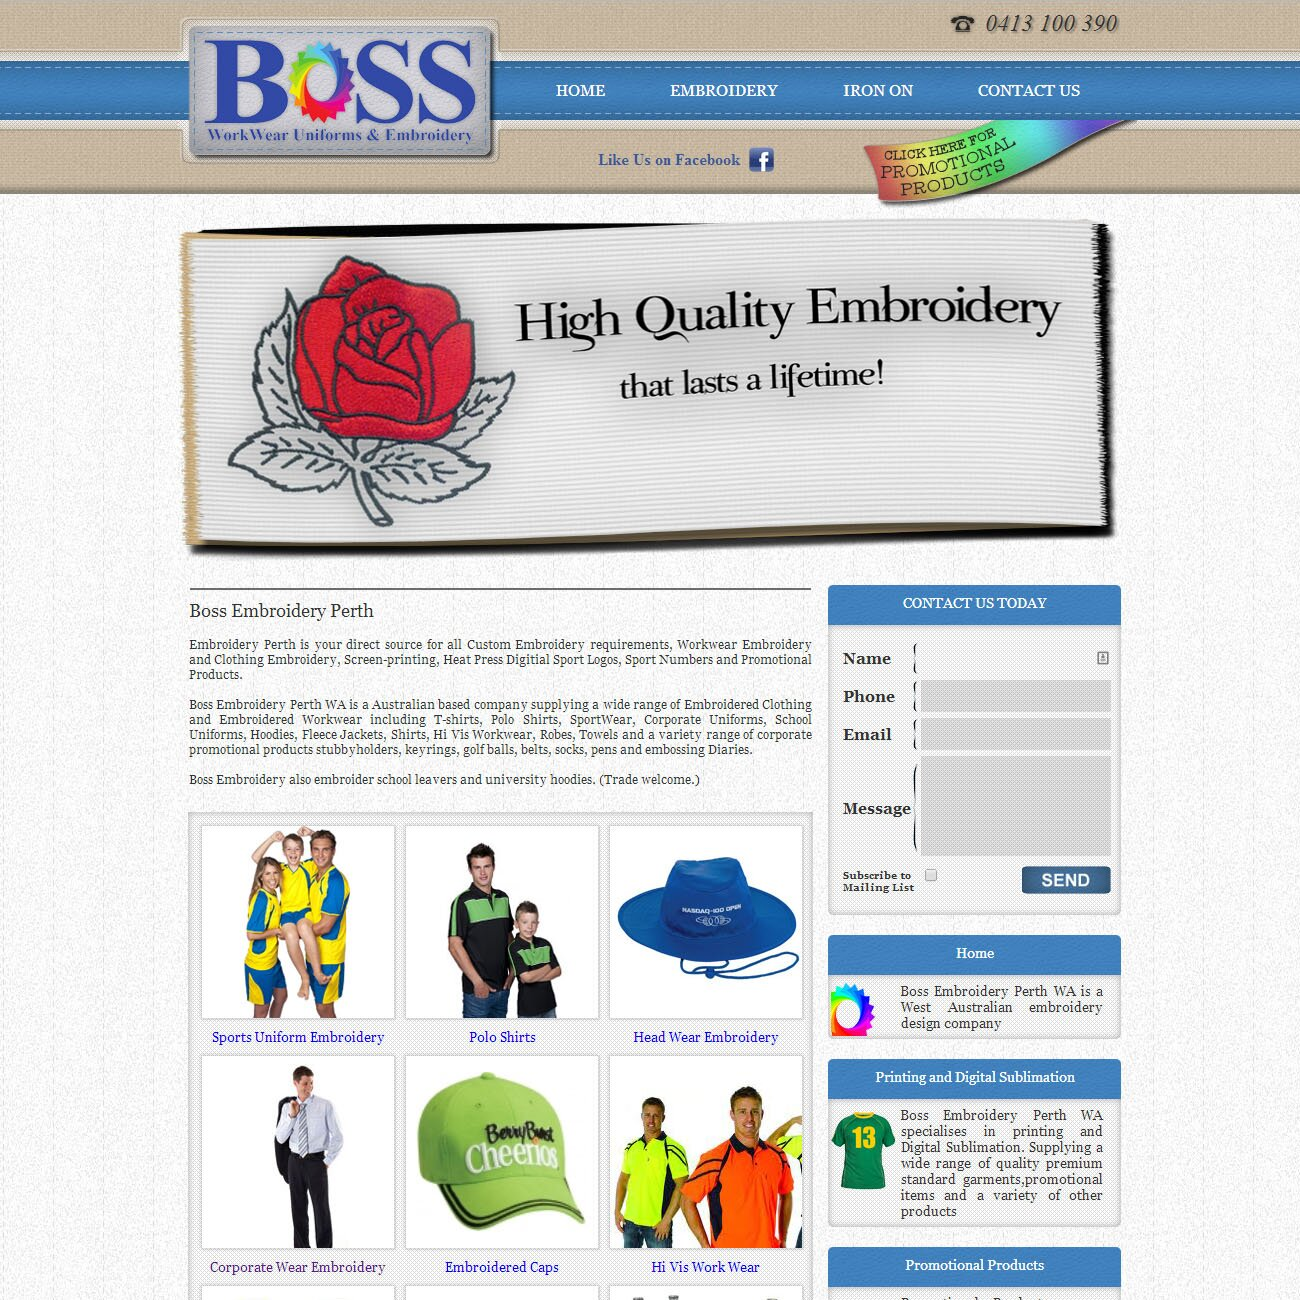 Embroidery business Perth